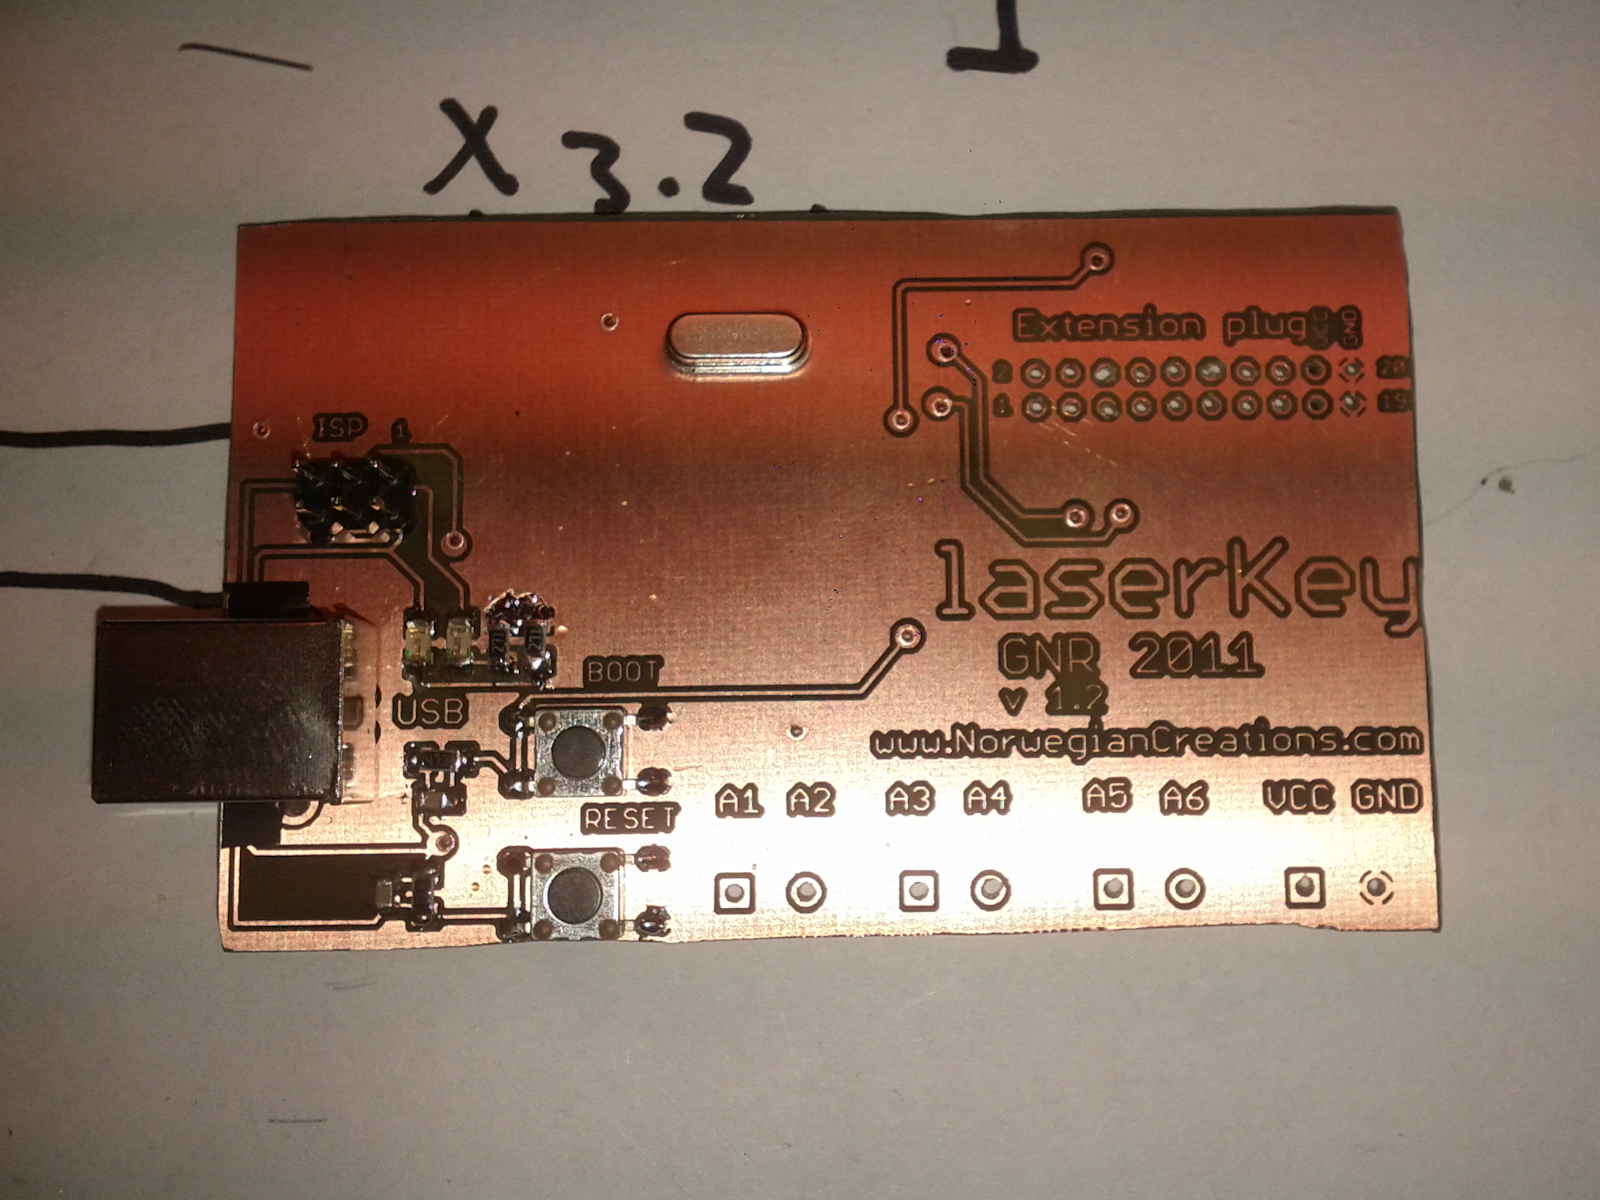 Soldered on the necessary components to test the MCU and USB (Top of the PCB)